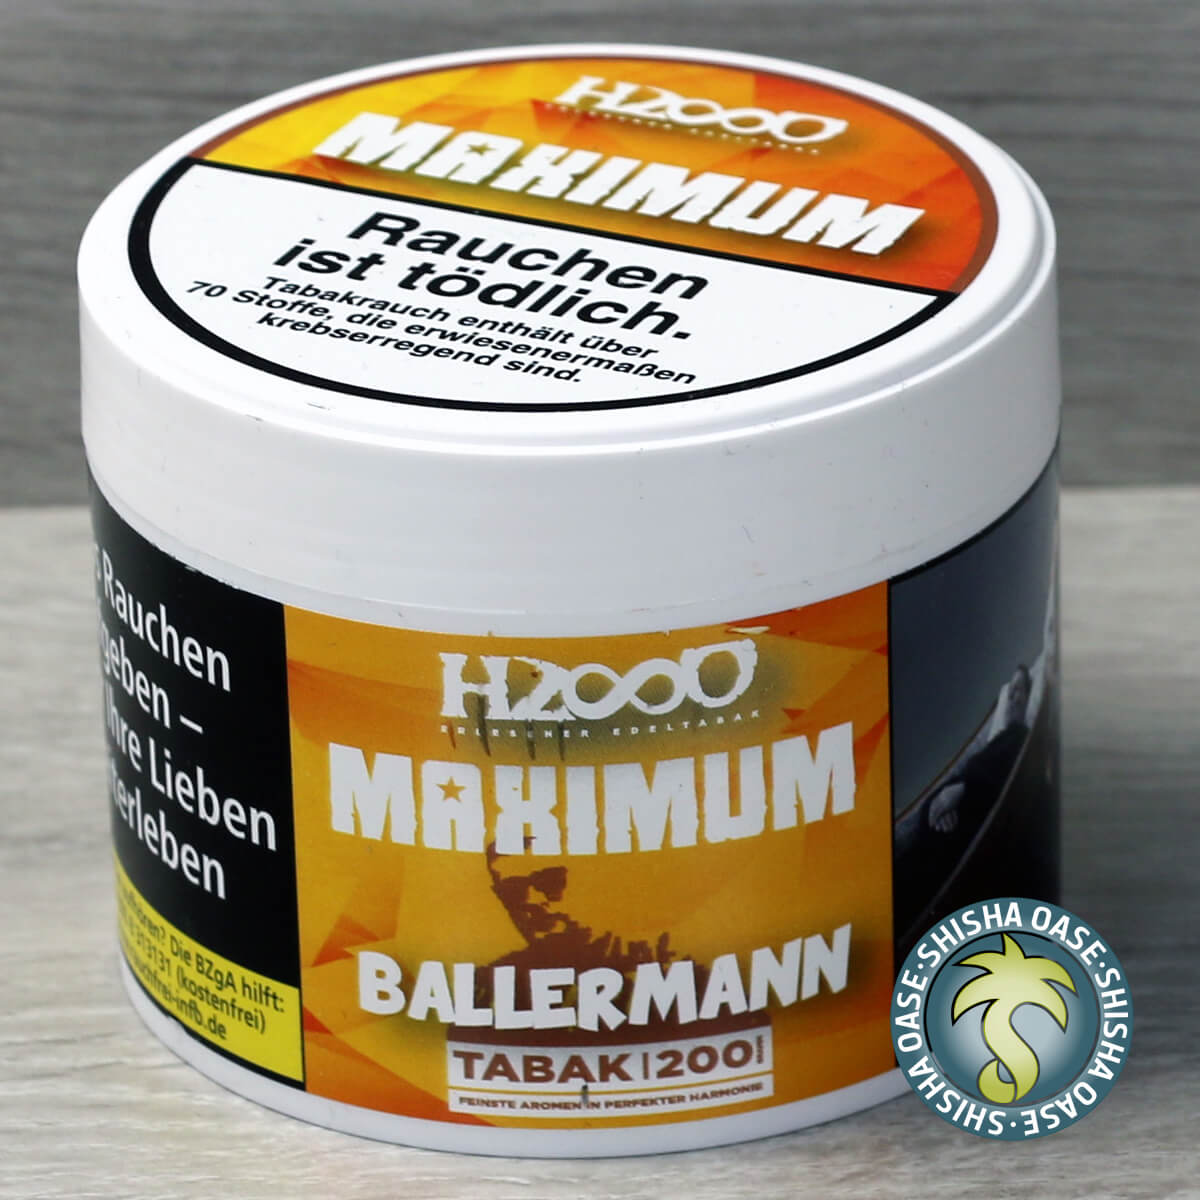 Hasso Tobacco Maximum Line 200g - Ballermann